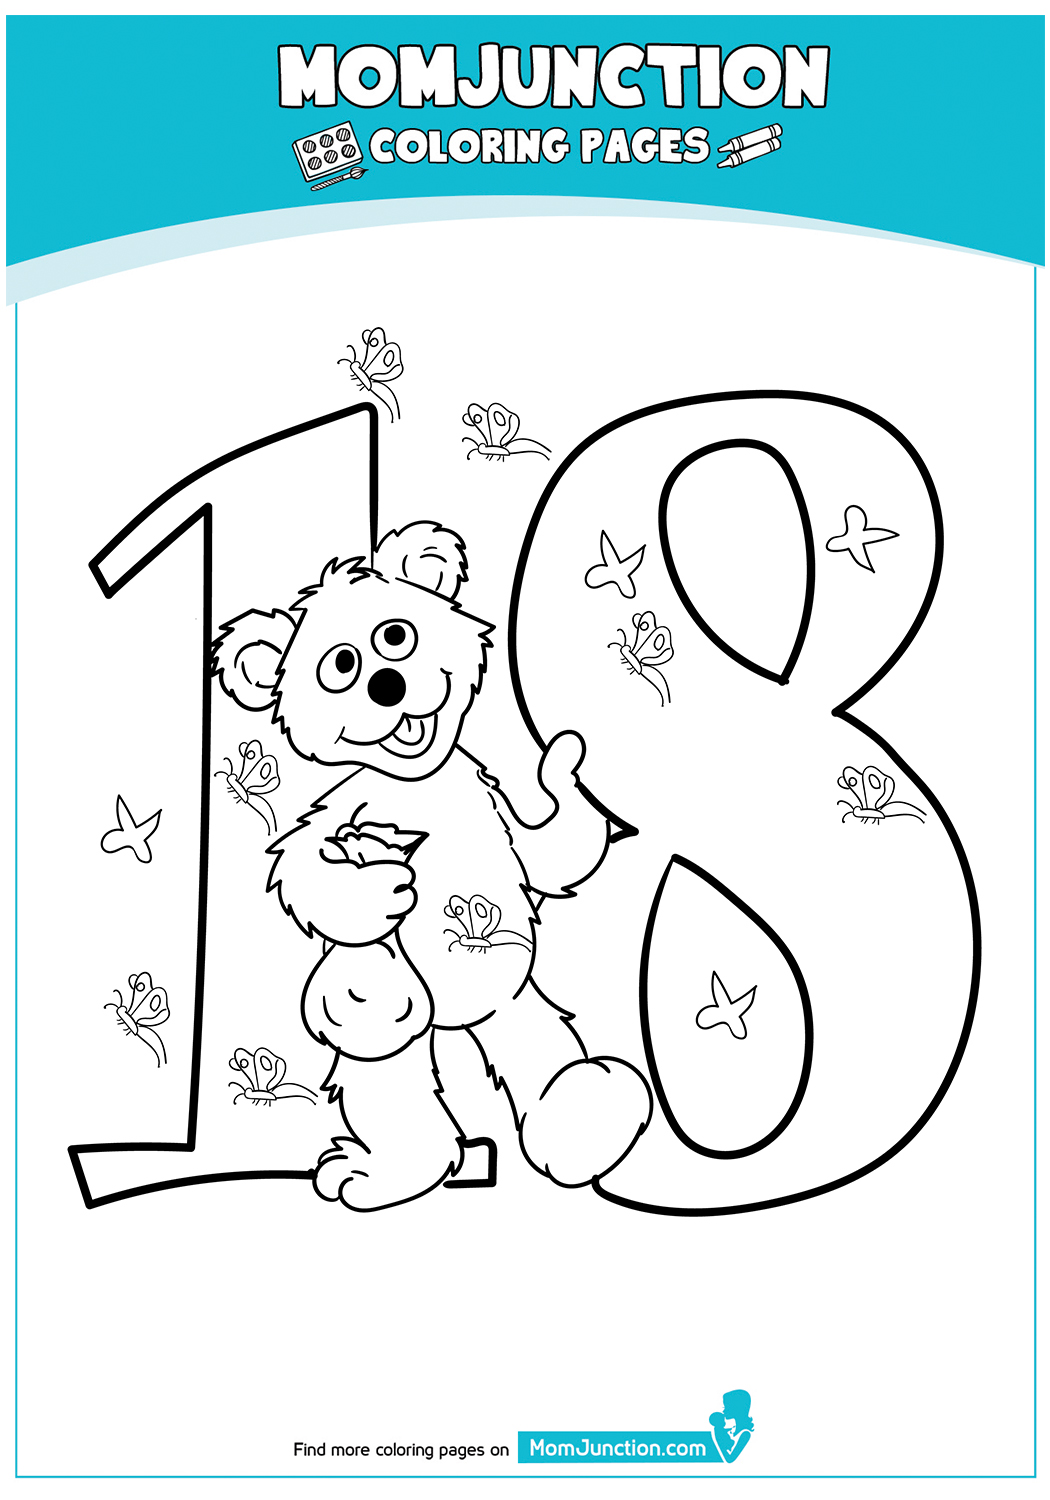 The-Number-18-Baby-bear-color-to-pritnt-17